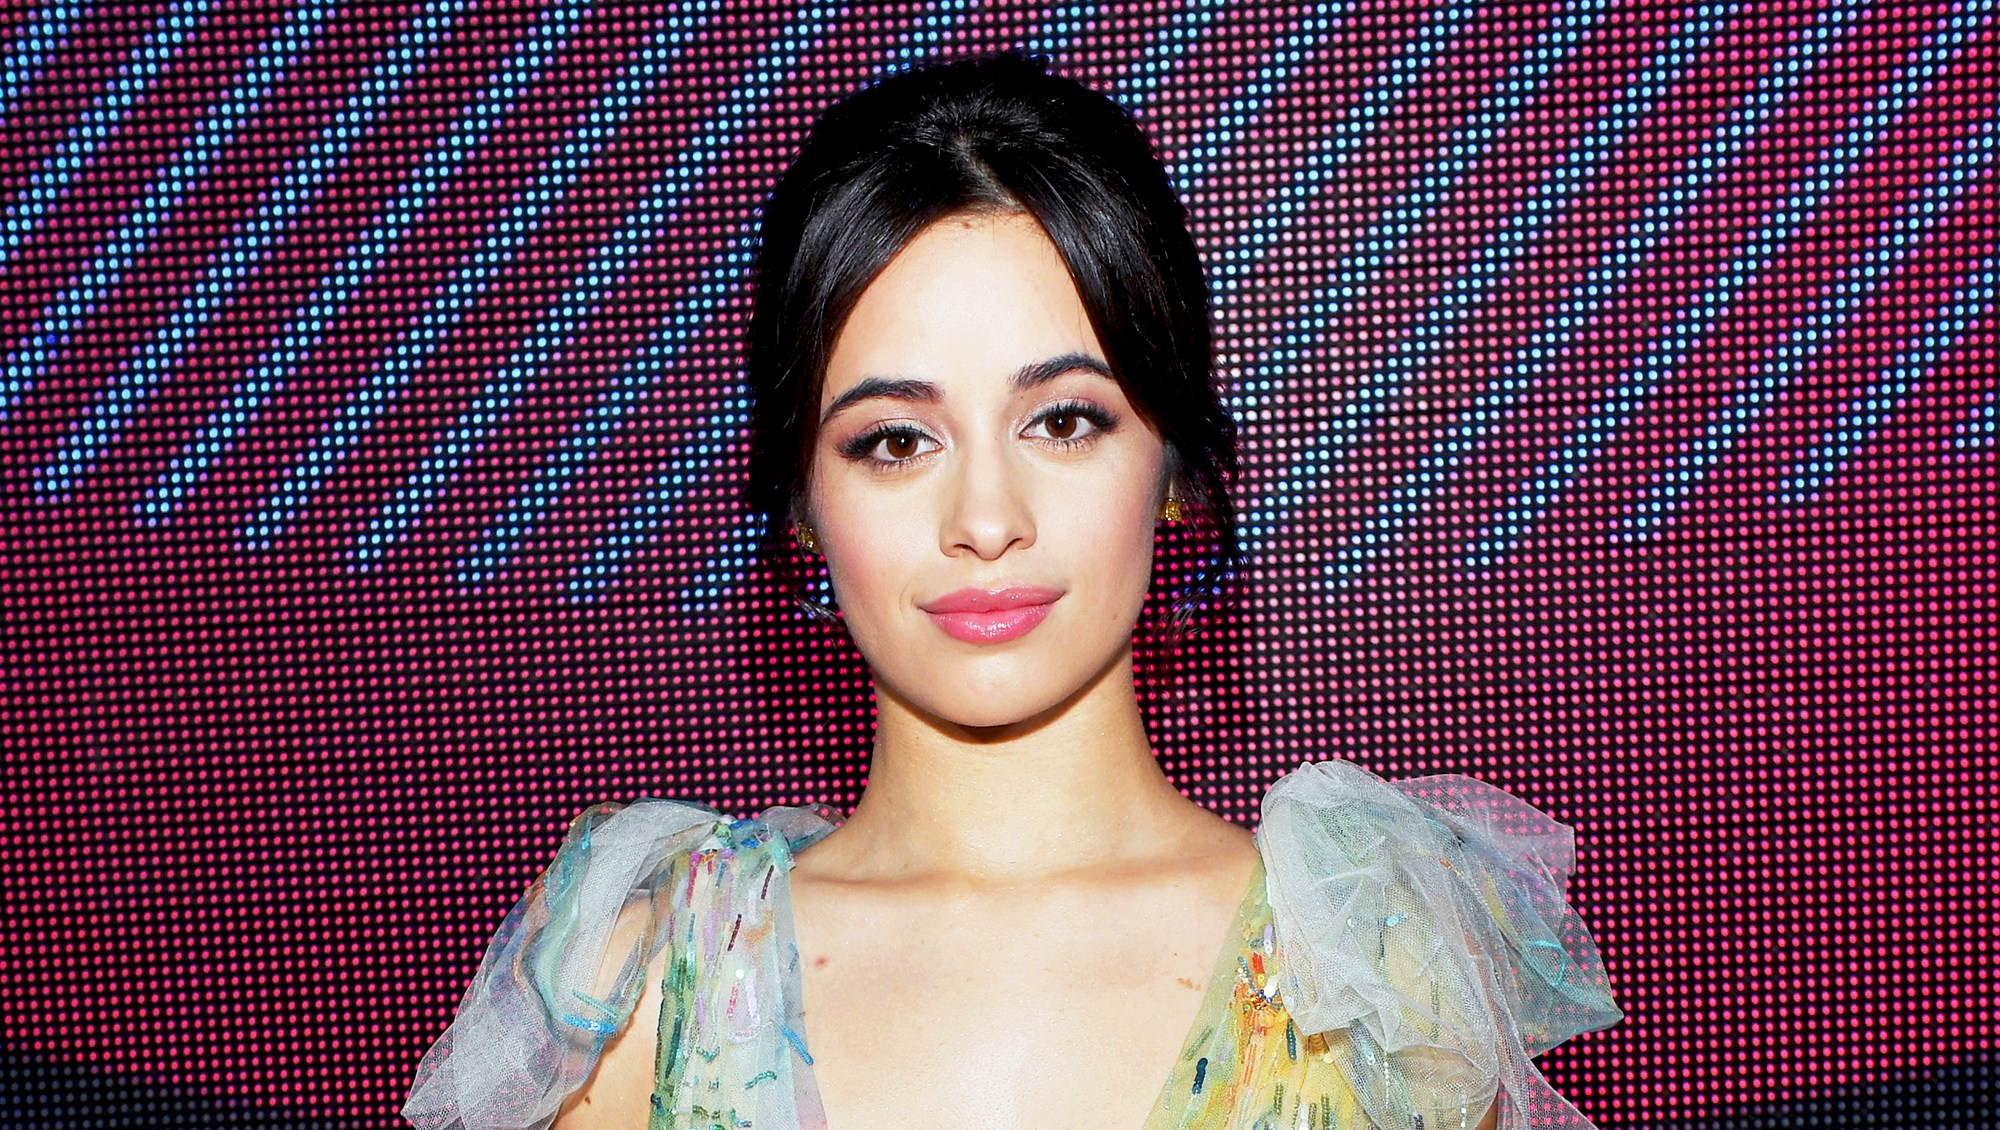 Camila Cabello attends The 18th Annual Latin Grammy Awards at MGM Grand Garden Arena in Las Vegas, Nevada.